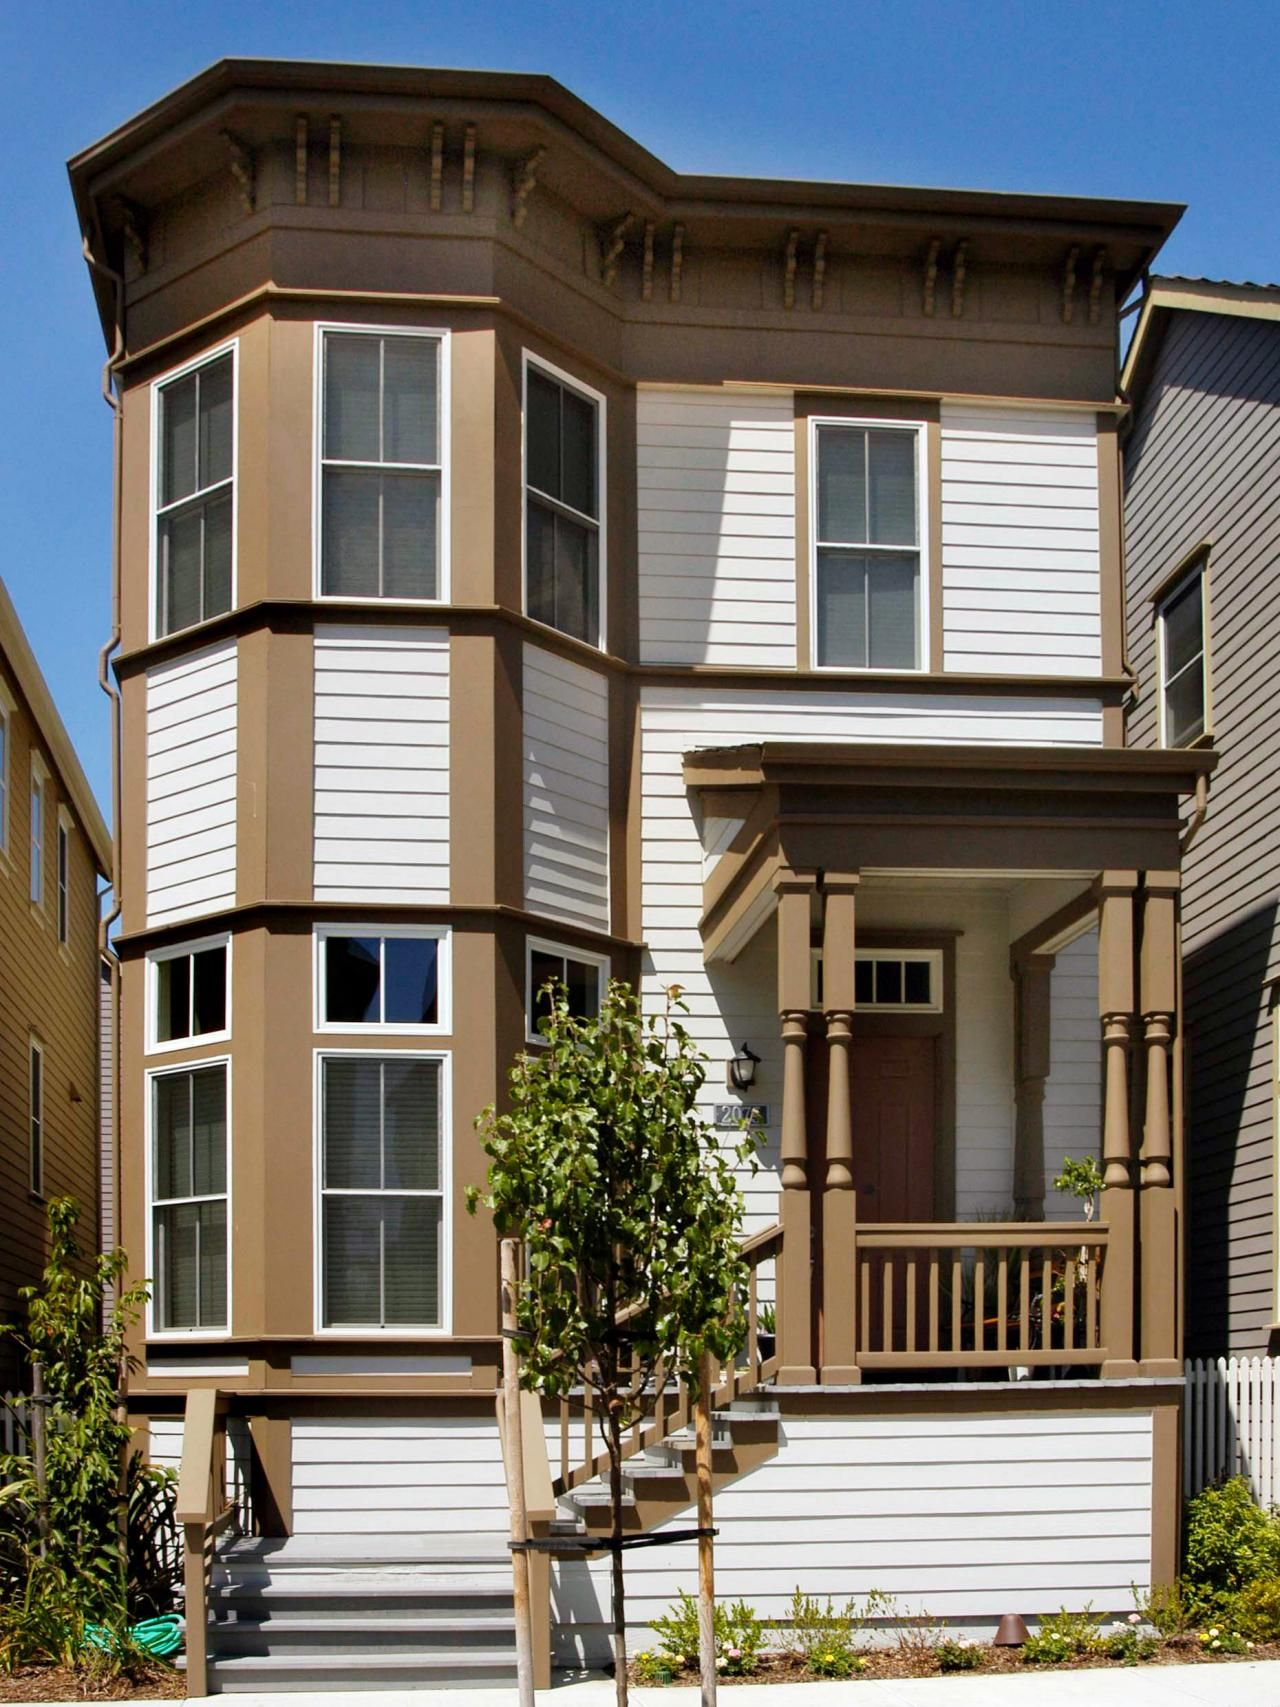 Front Design Of Row House Part - 40: ... Was So Common In Century-built Row Houses, Remains A Popular Style In  Home Design. Itu0027s Evident Here In The Two-level Bay Windows And Front-porch  Design